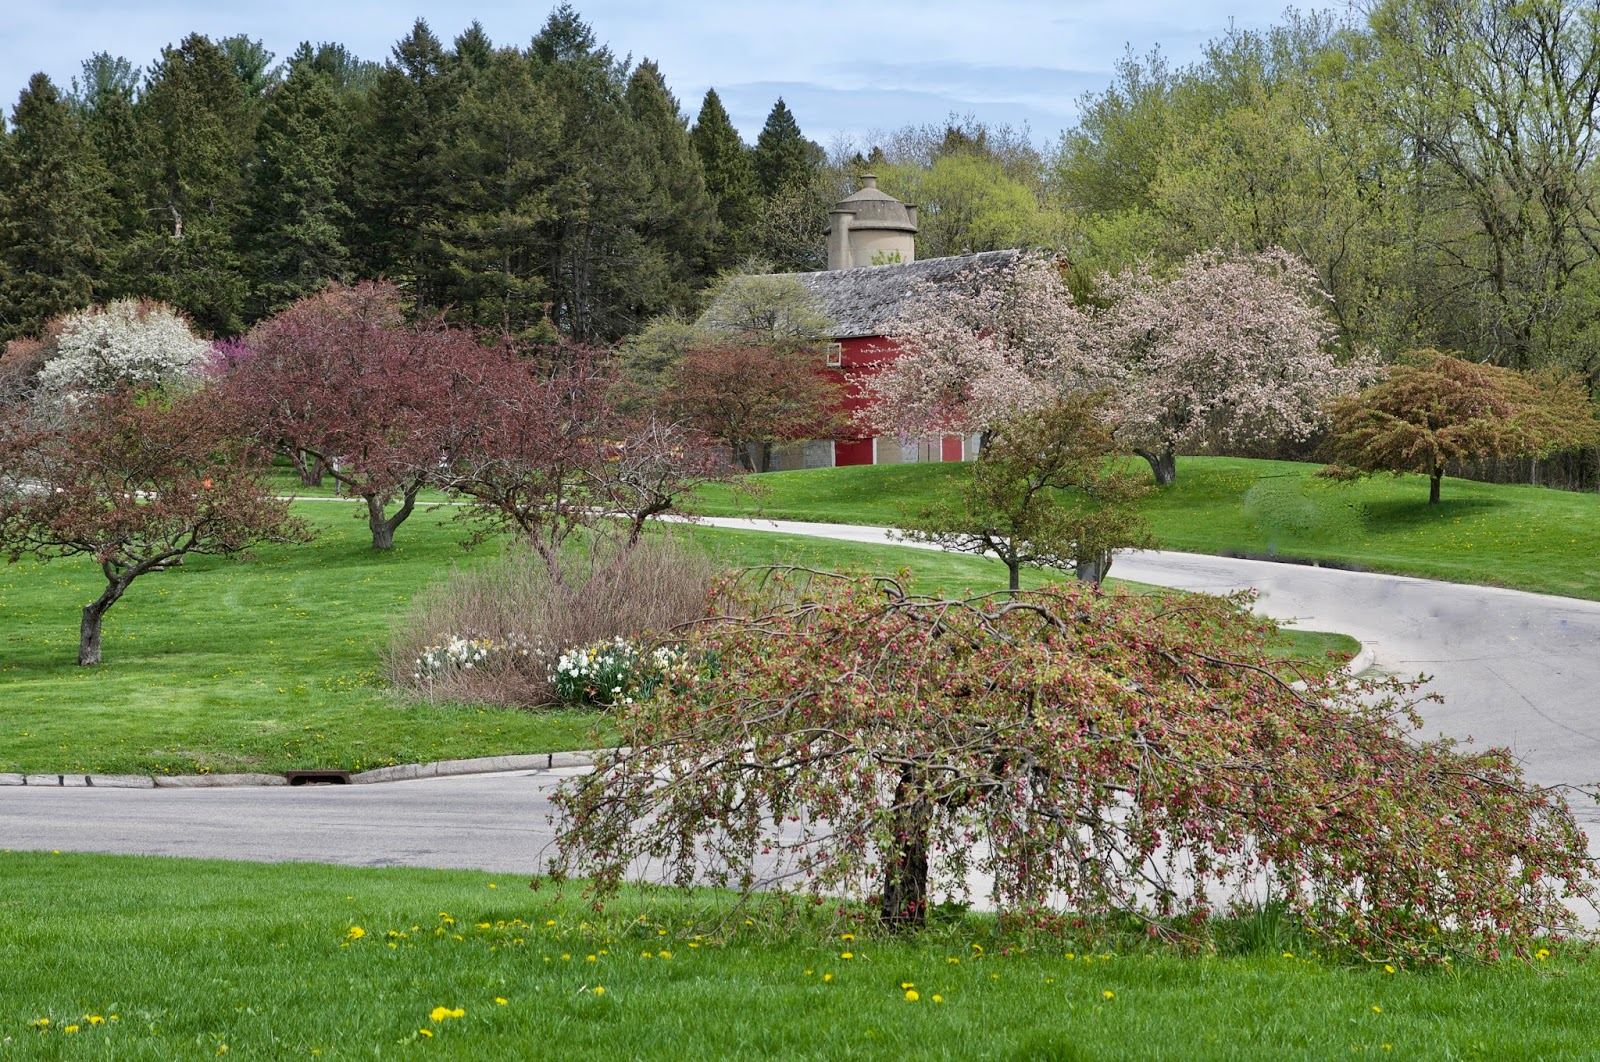 Milwaukee Area Parks Flower Power At Boerner Botanical Gardens